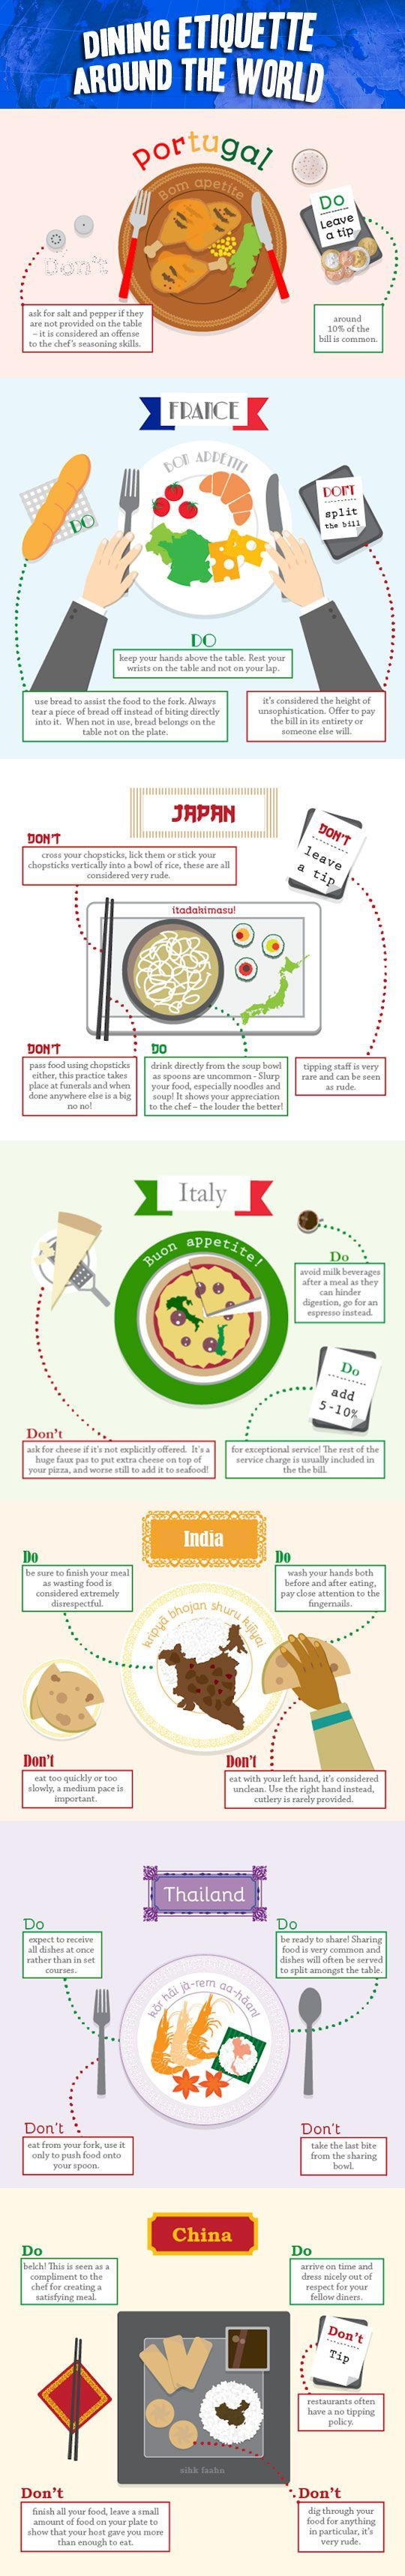 Dining etiquette around the world. Good tips for when you're abroad travelling - USQ